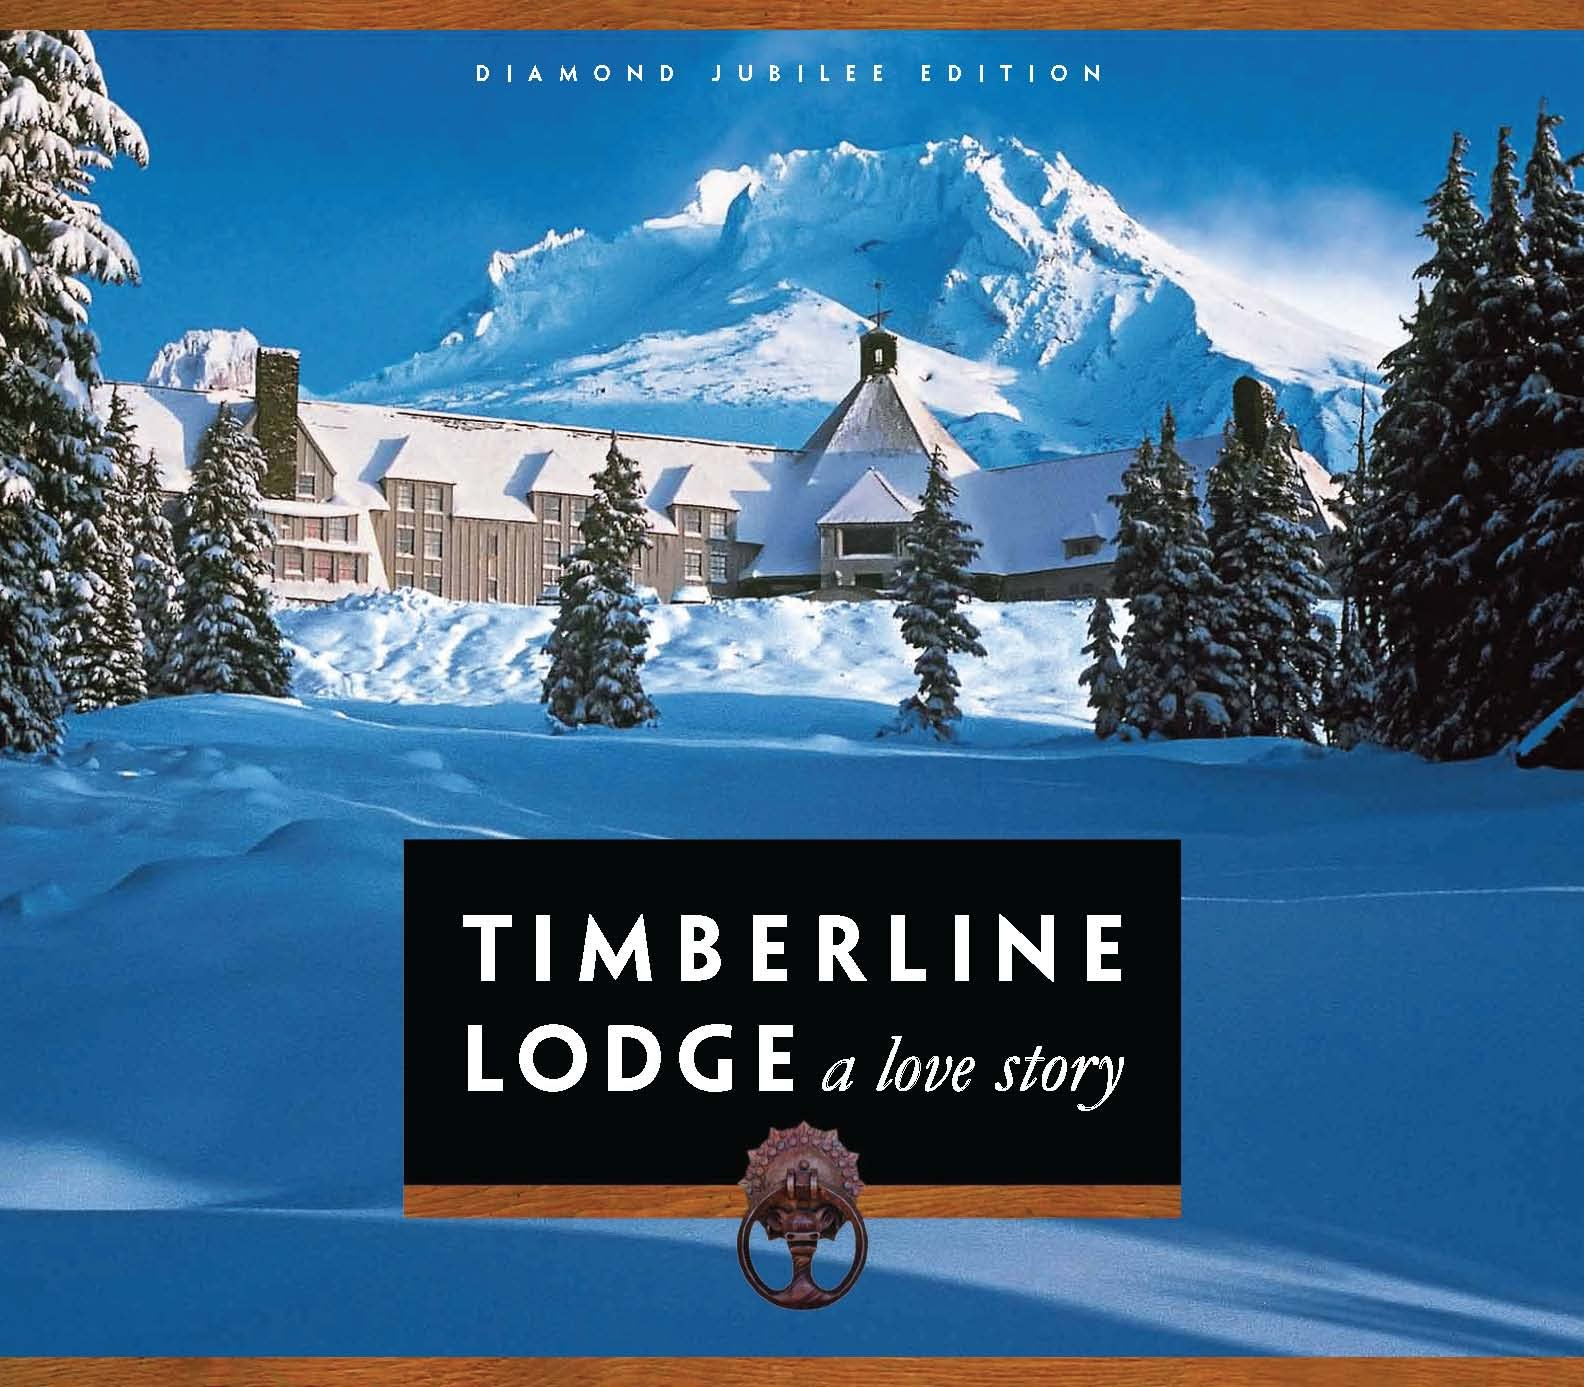 Timberline Lodge ISBN-13 9780615383743